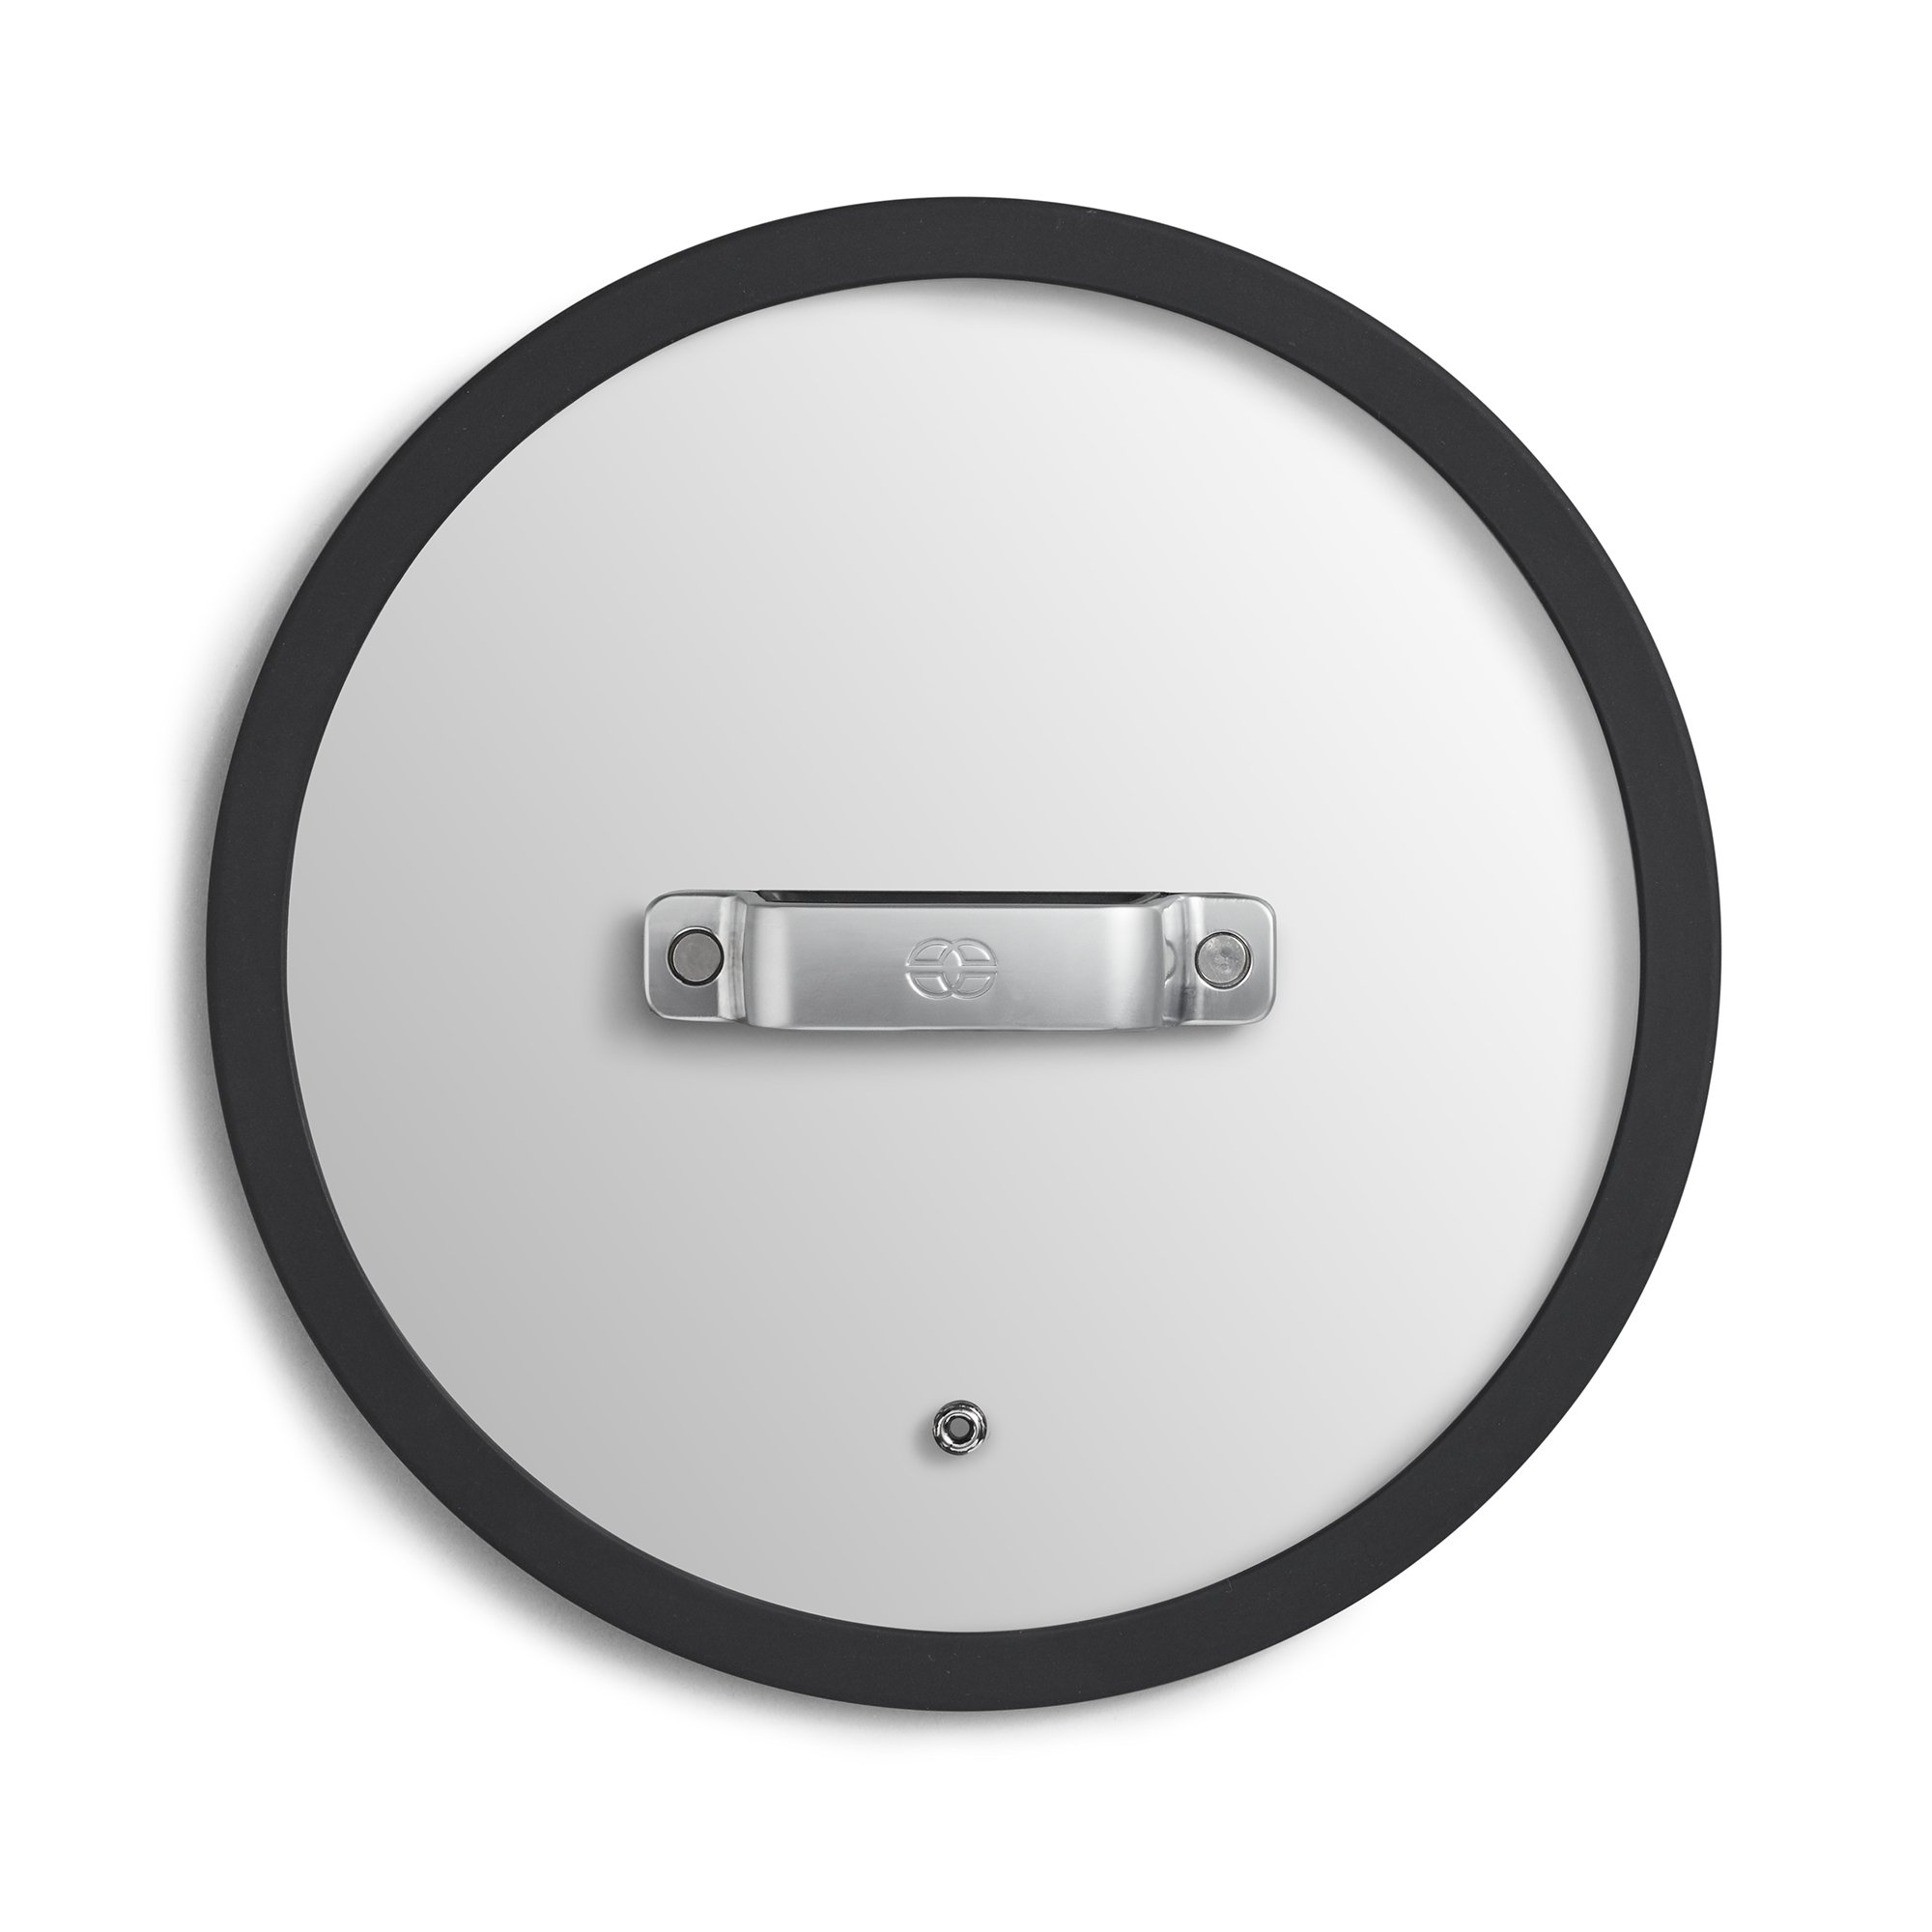 Calphalon Digital Sauté Slow Cooker Replacement Glass Lid